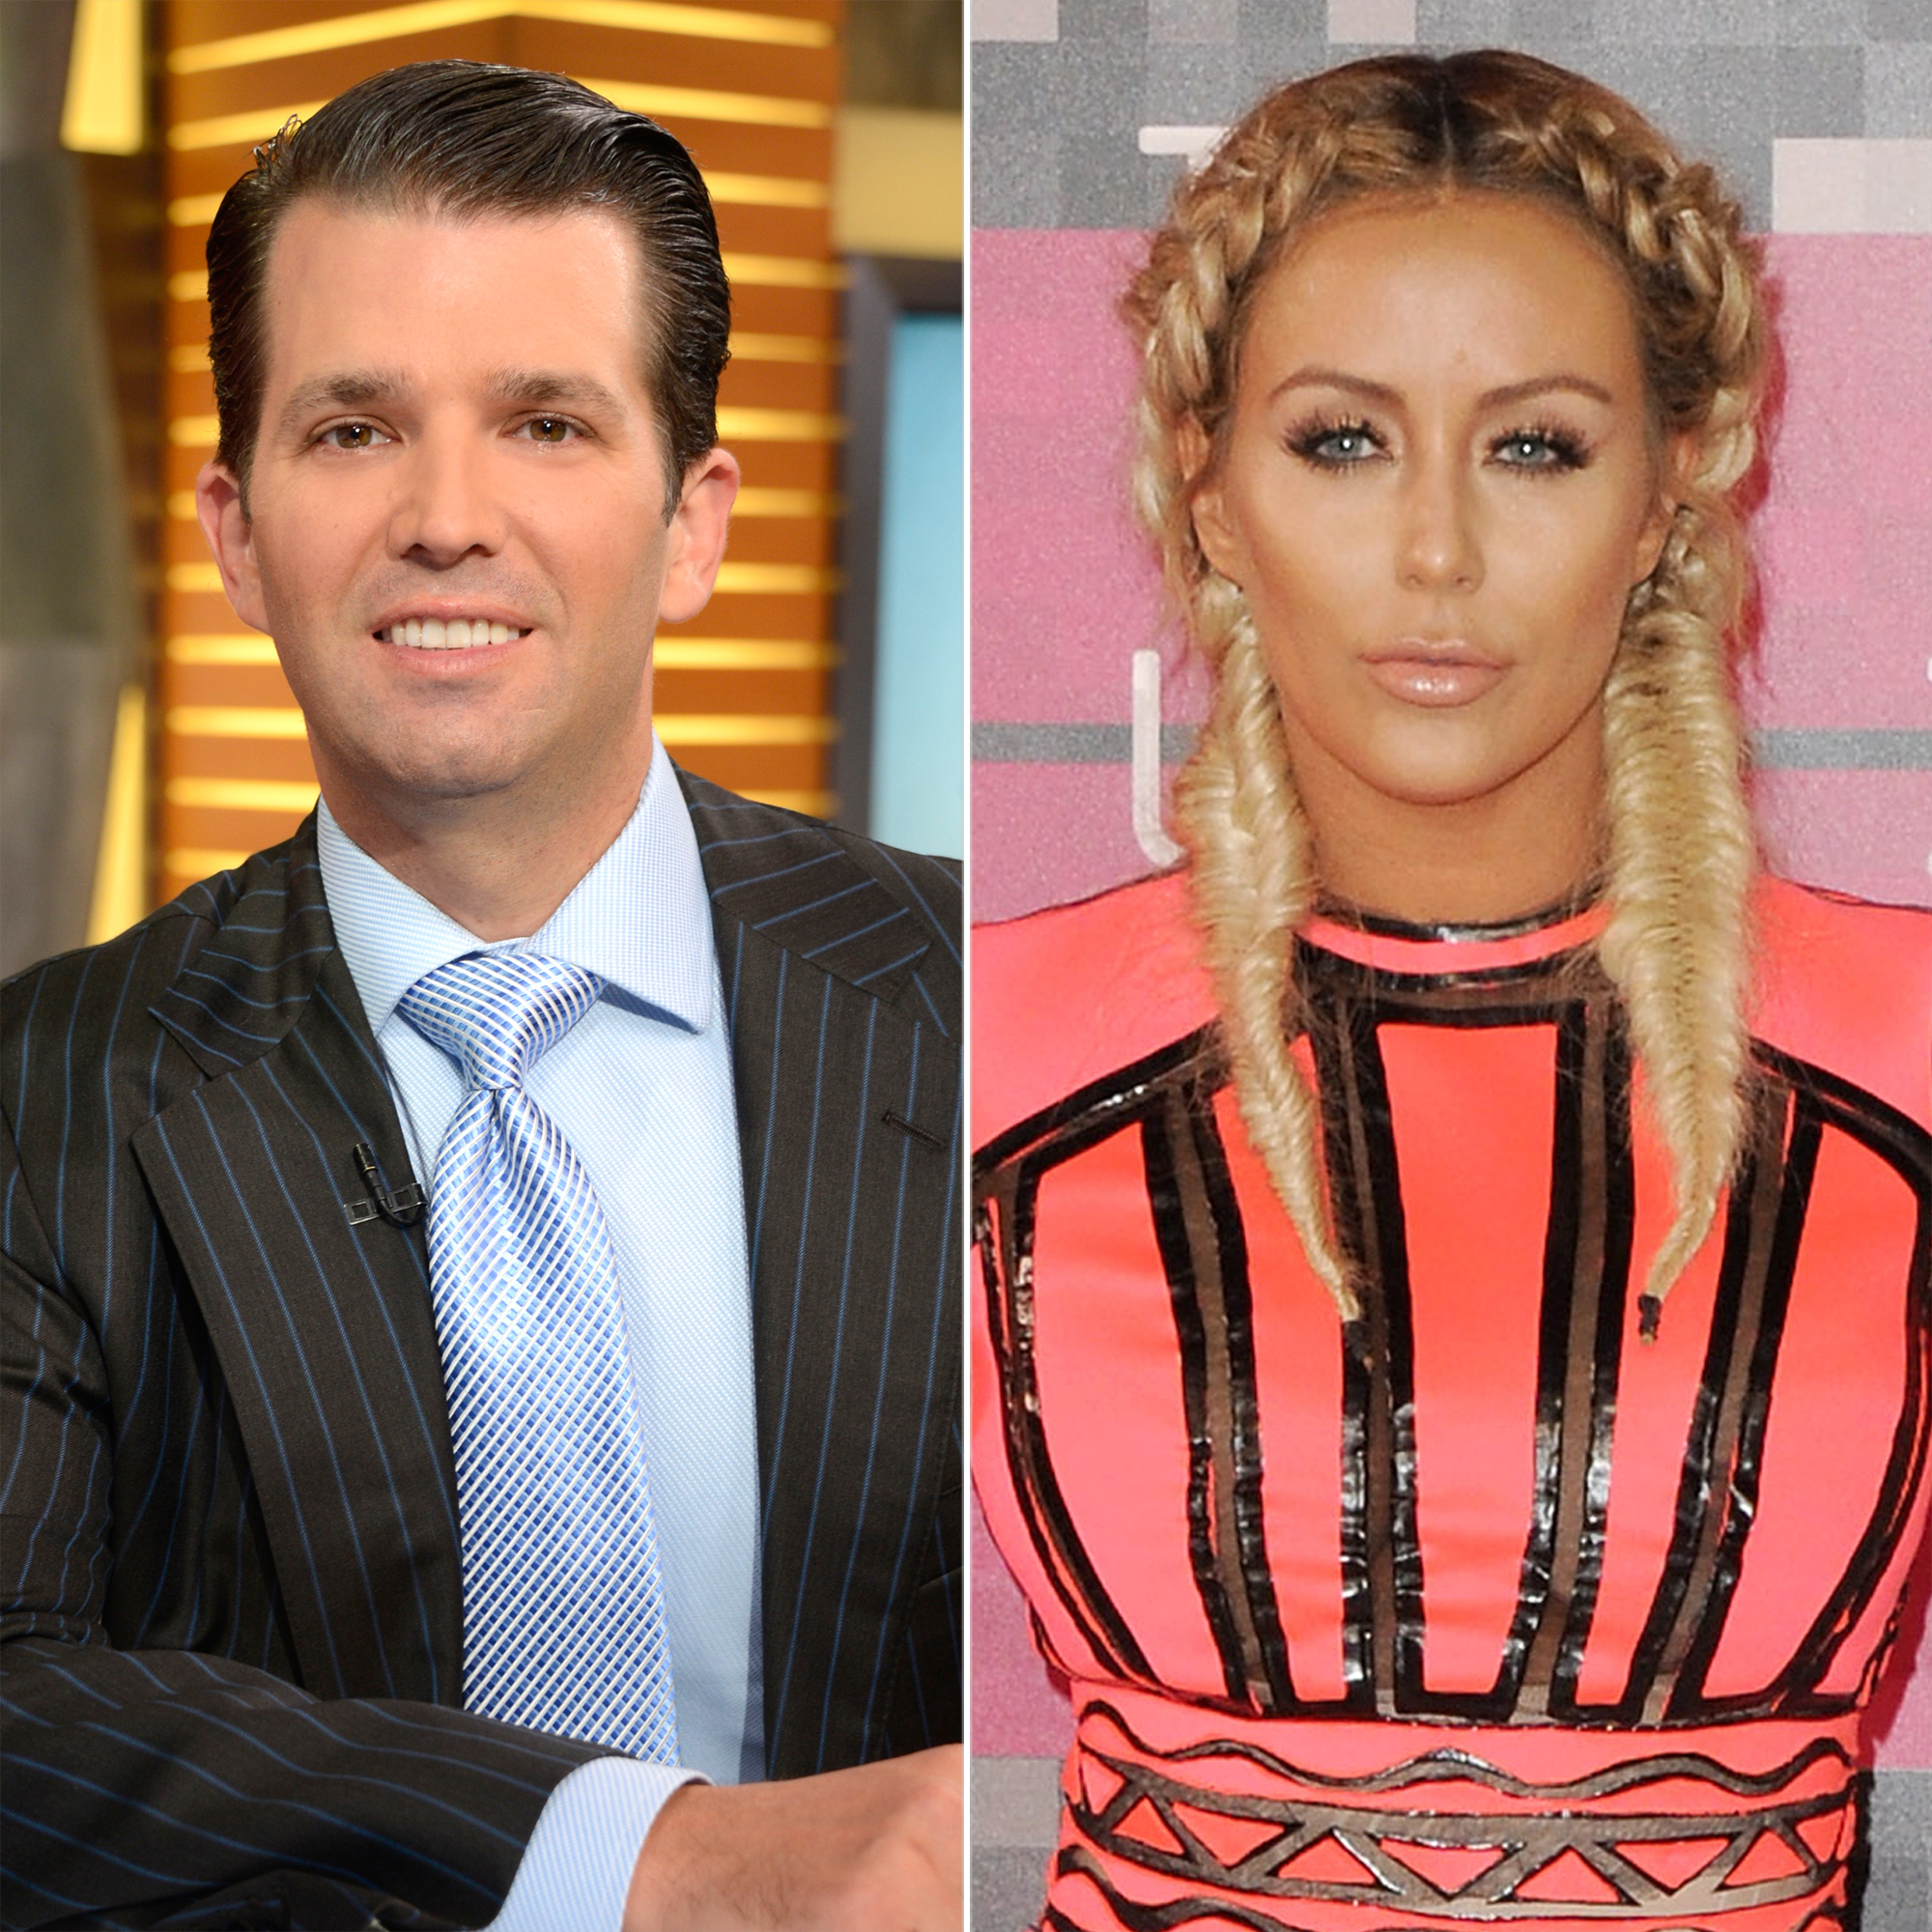 So, Is Aubrey O'Day's Song 'DJT' About Donald Trump Jr.?